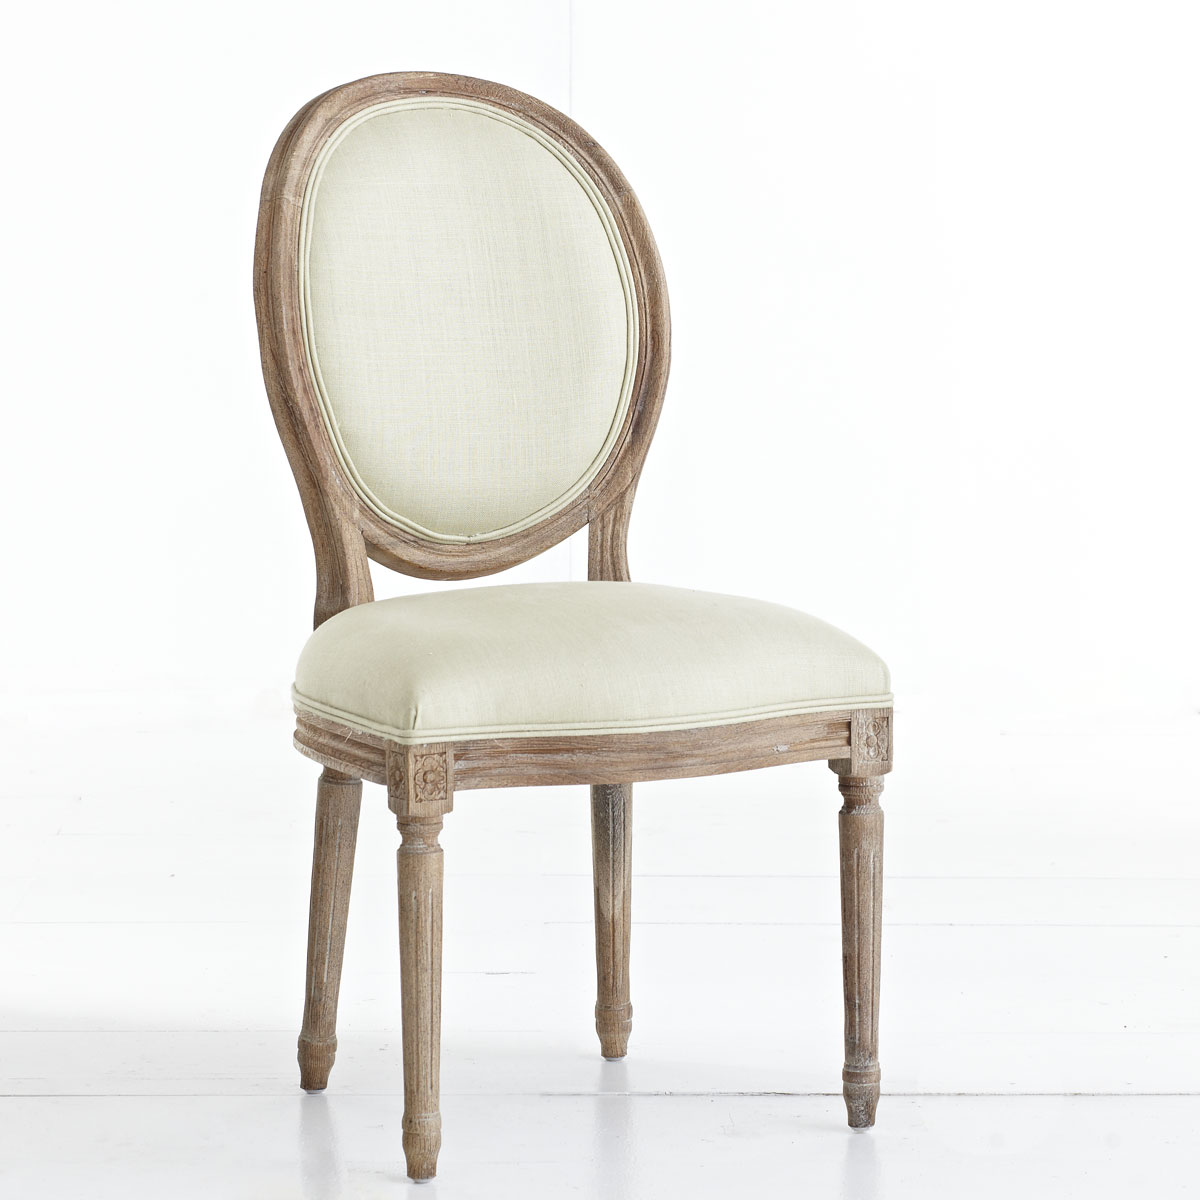 Seacrest Style: Dining Chairs